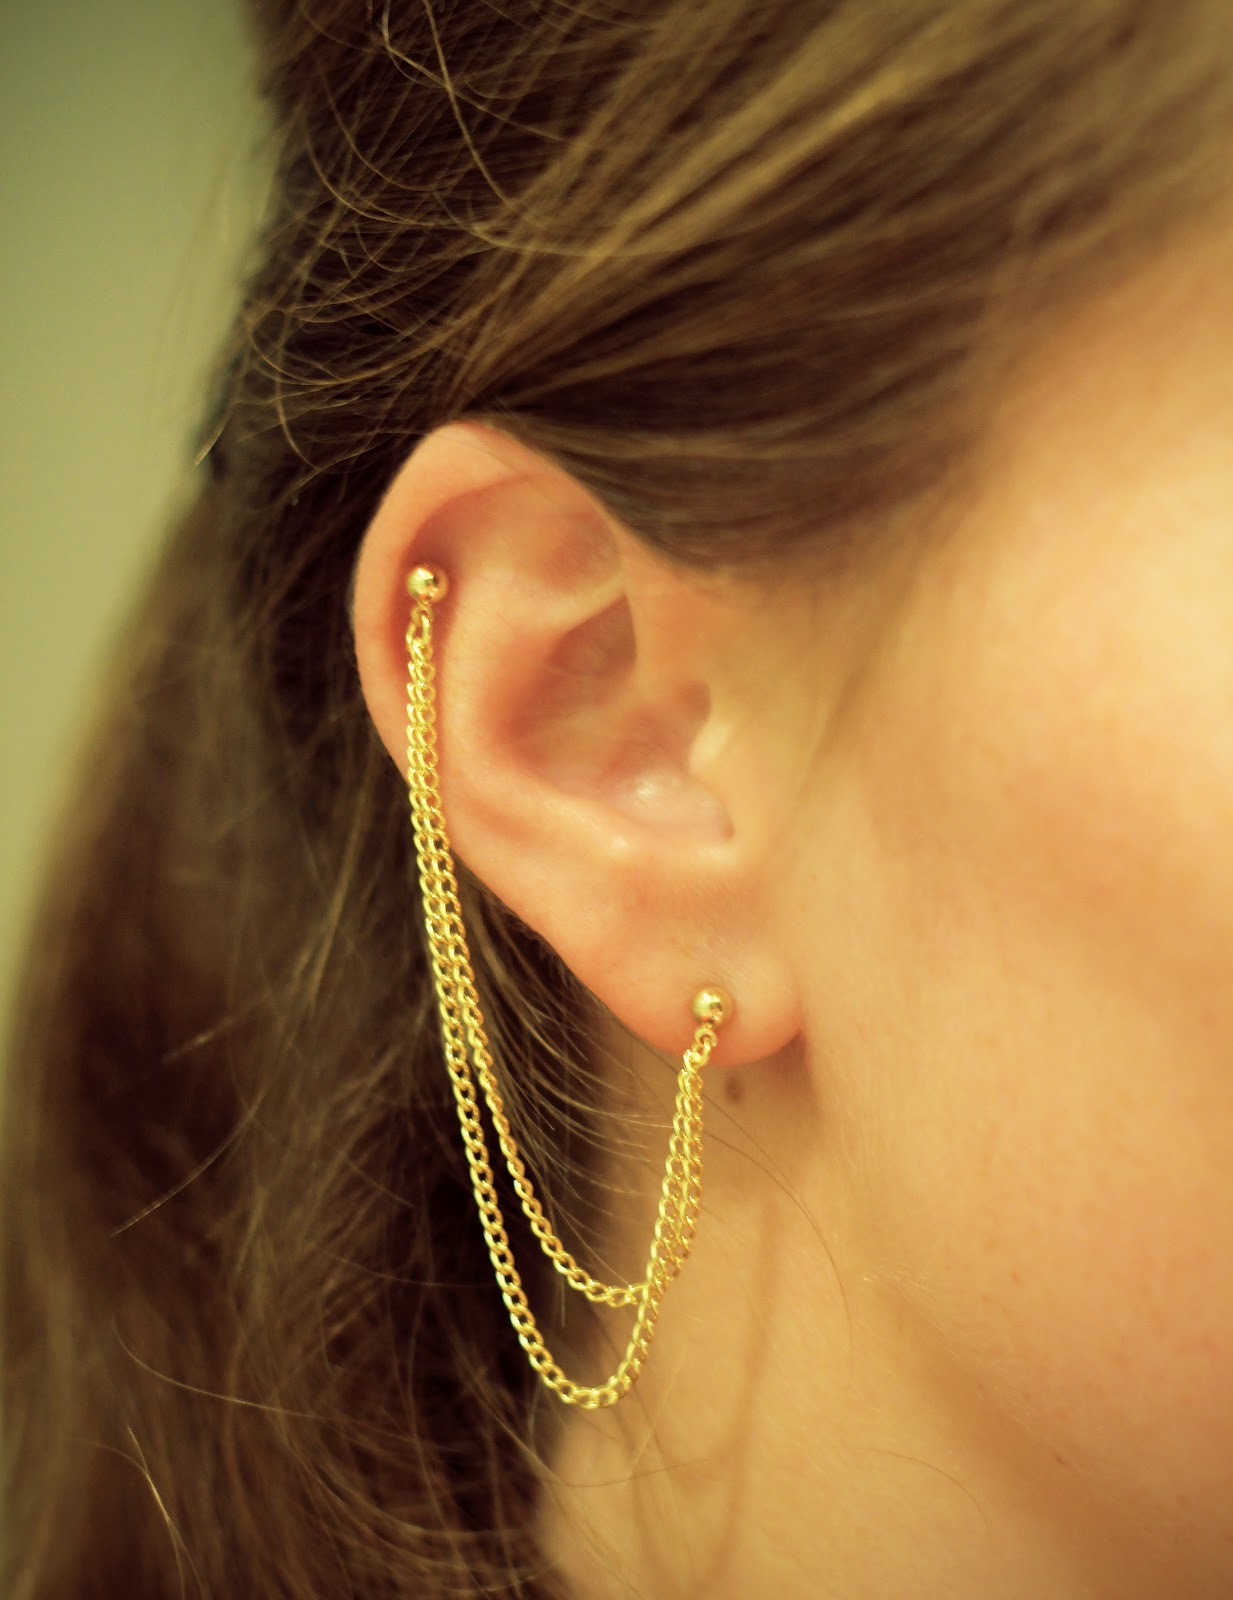 Ride-Or-DIY: DIY Double-Piercing Chain Earring